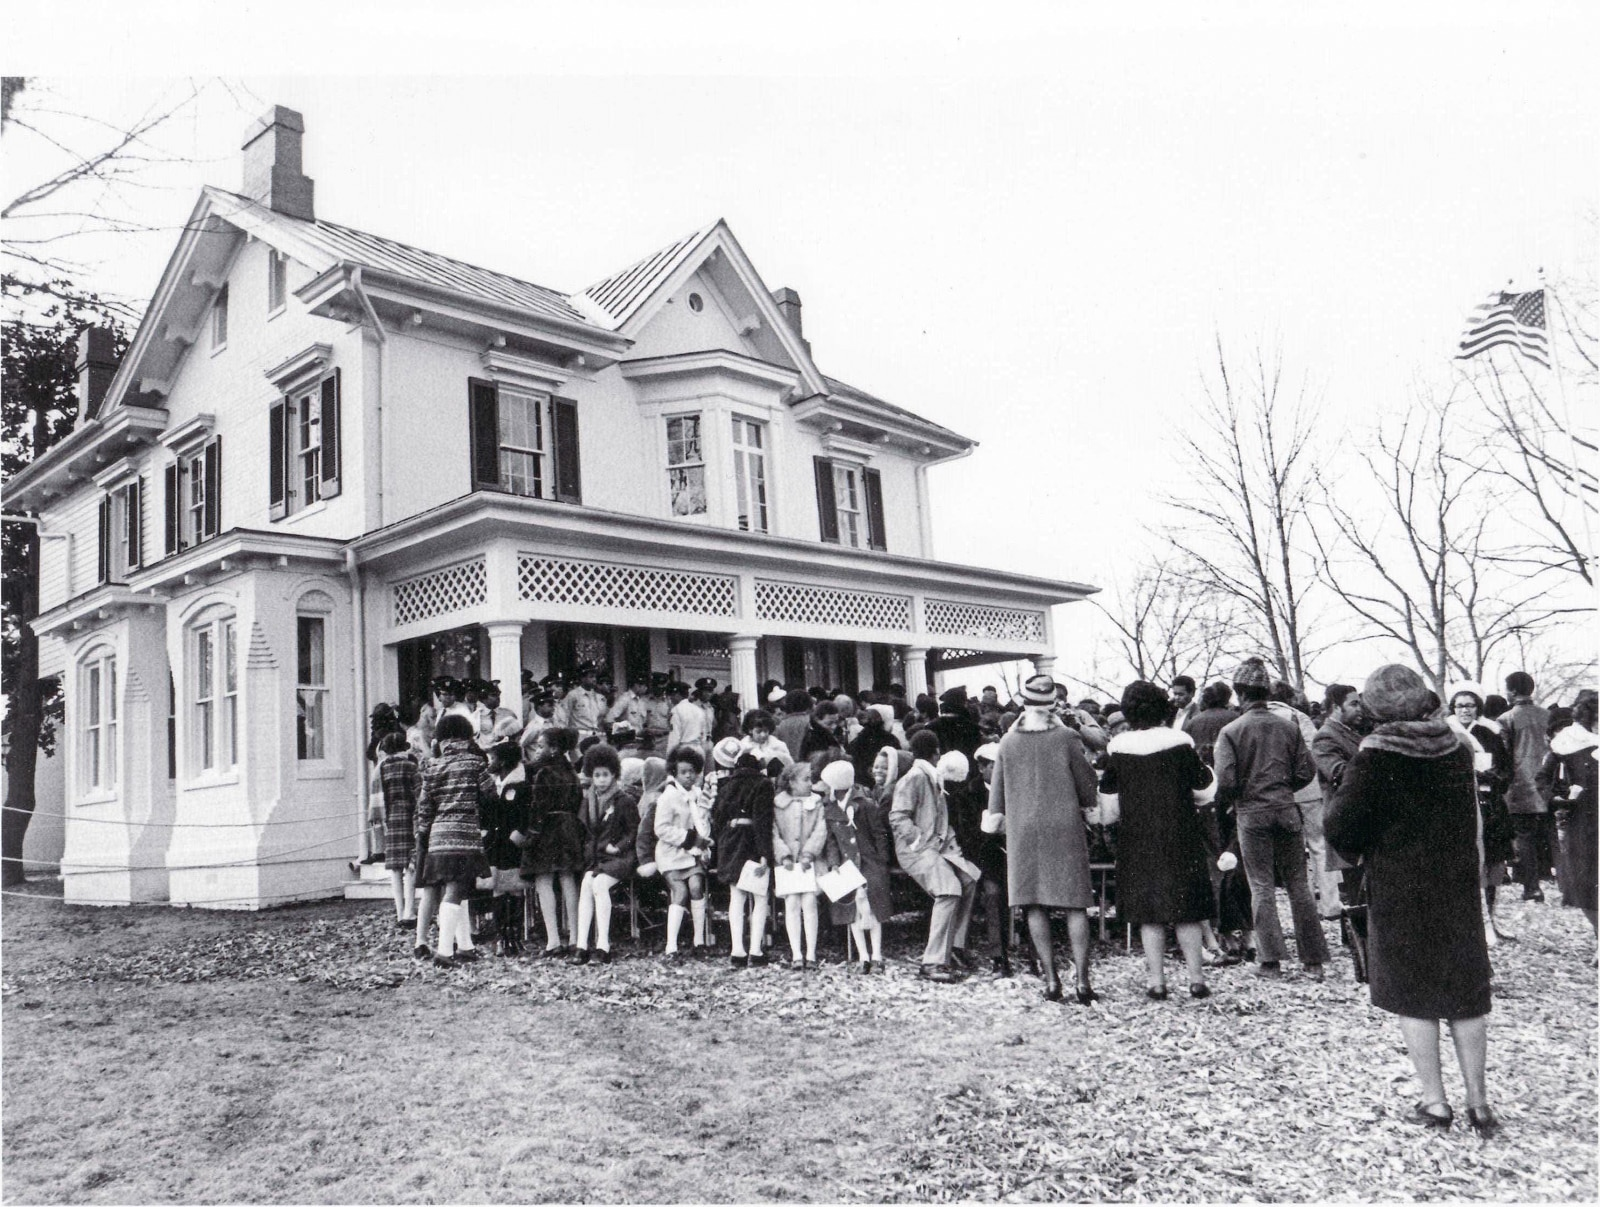 Large two-story house with crowd of people on front porch and in yard (National Park Service)